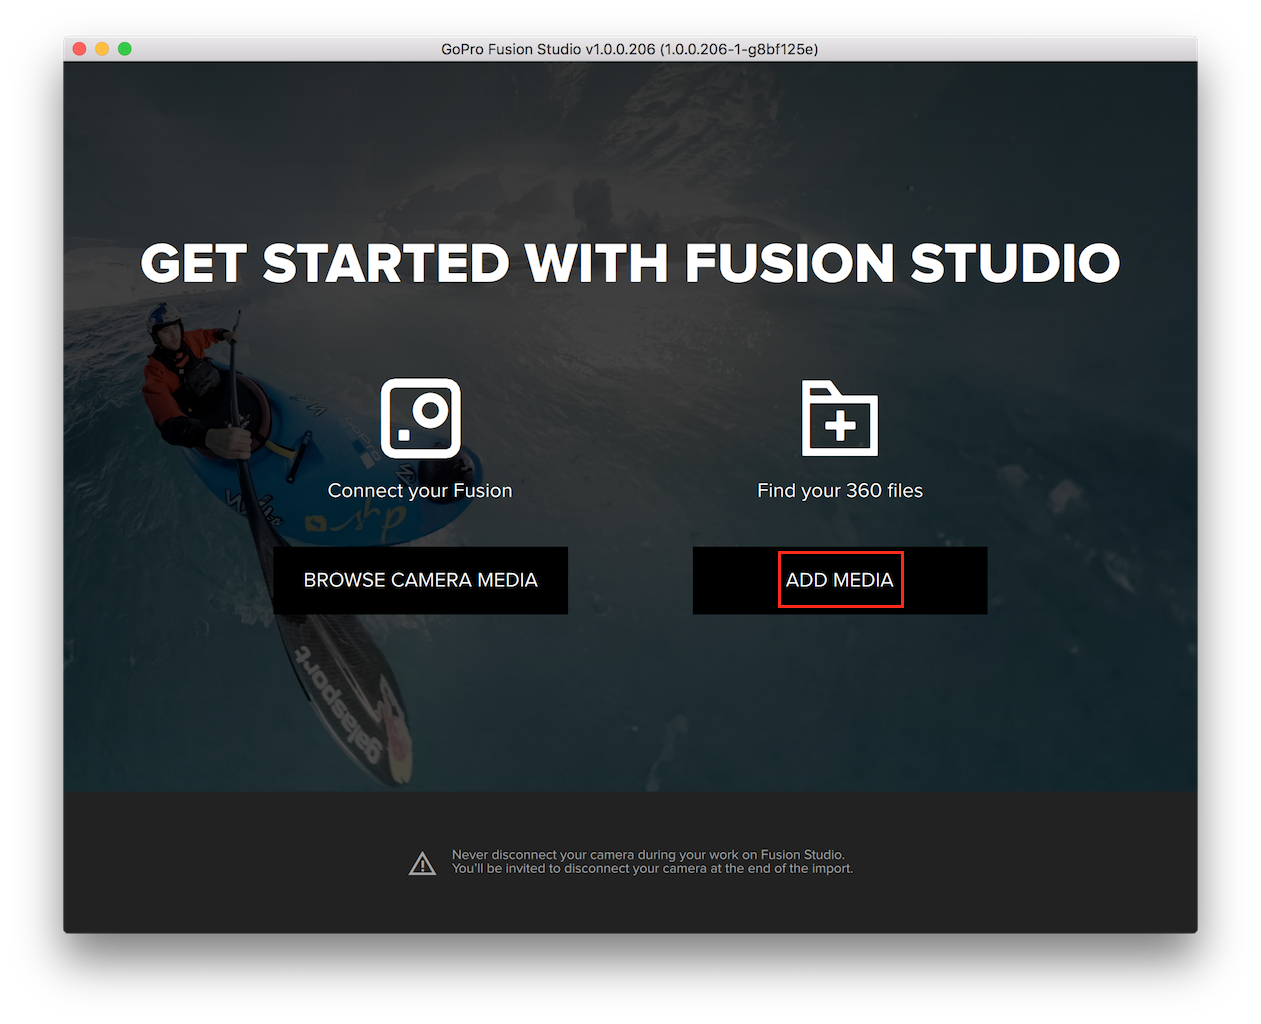 How to Import Media into the GoPro Fusion Studio App